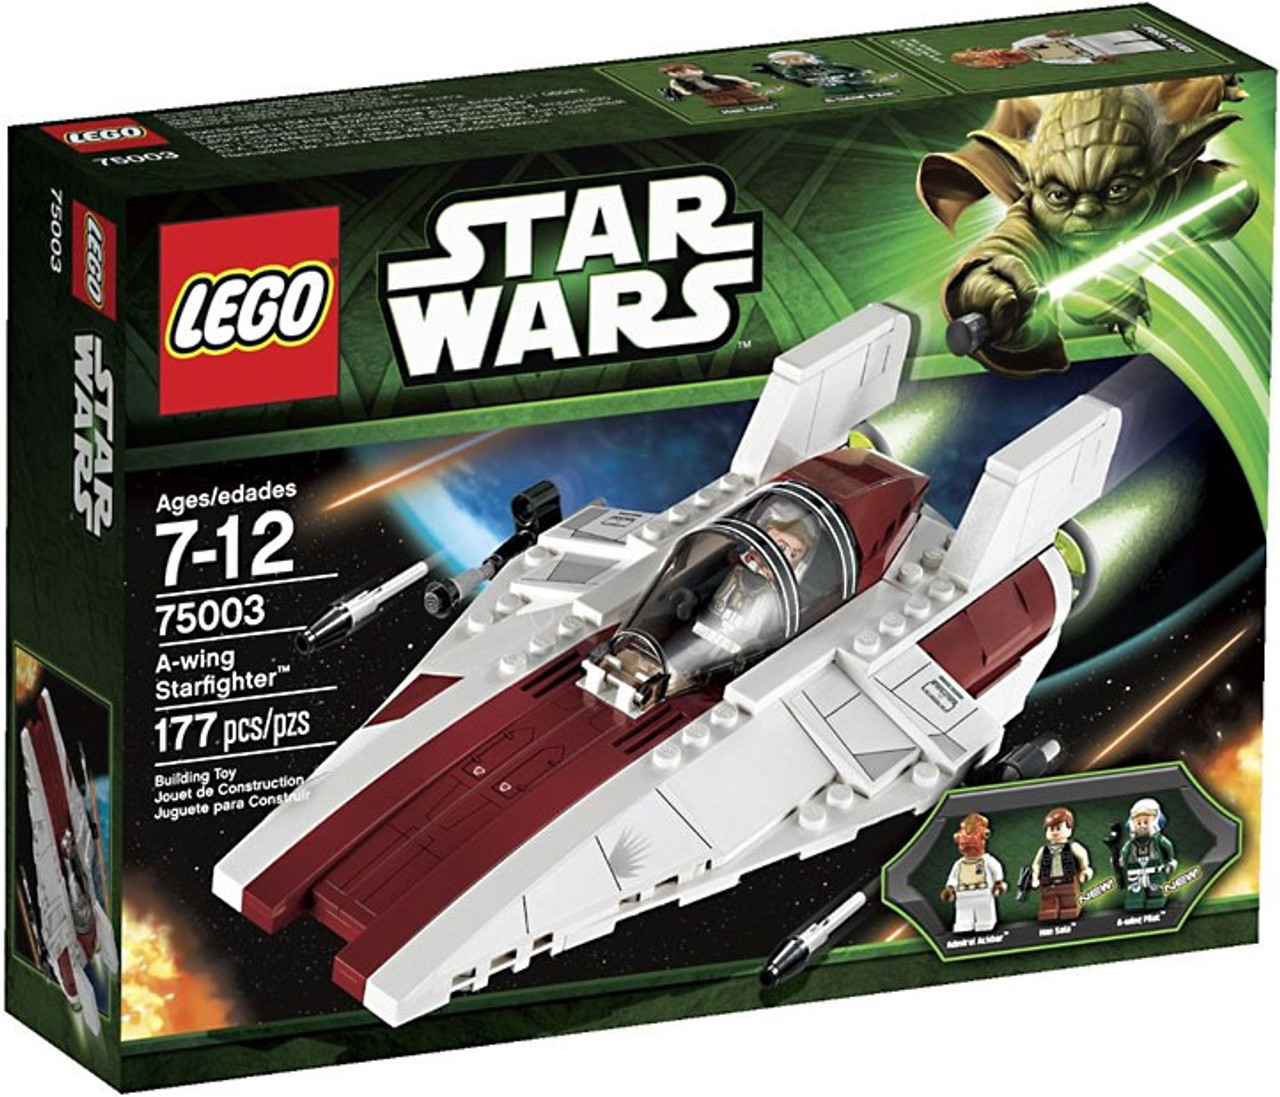 LEGO Star Wars Return of the Jedi A-Wing Starfighter Set 75003 - ToyWiz